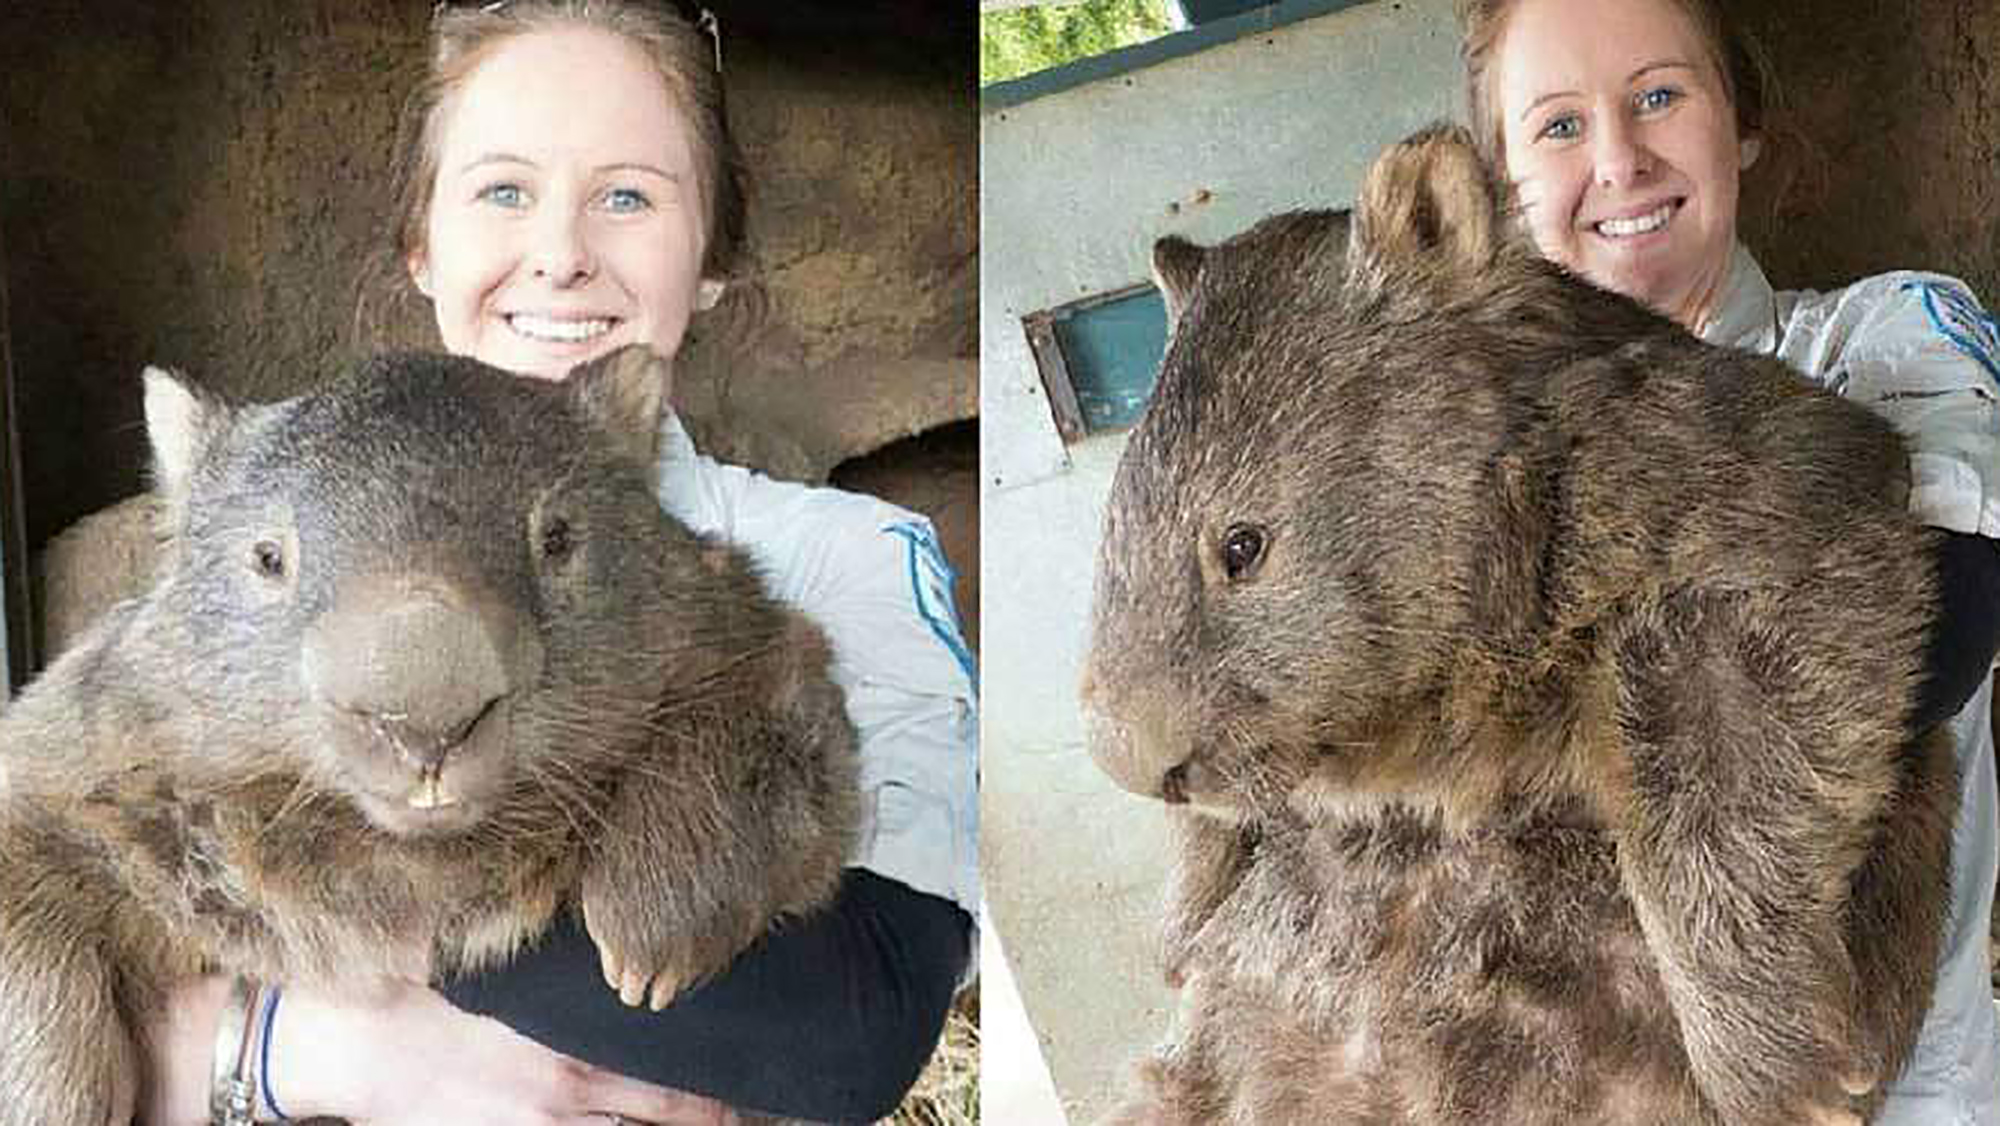 Meet Patrick, the world's oldest and largest wombat